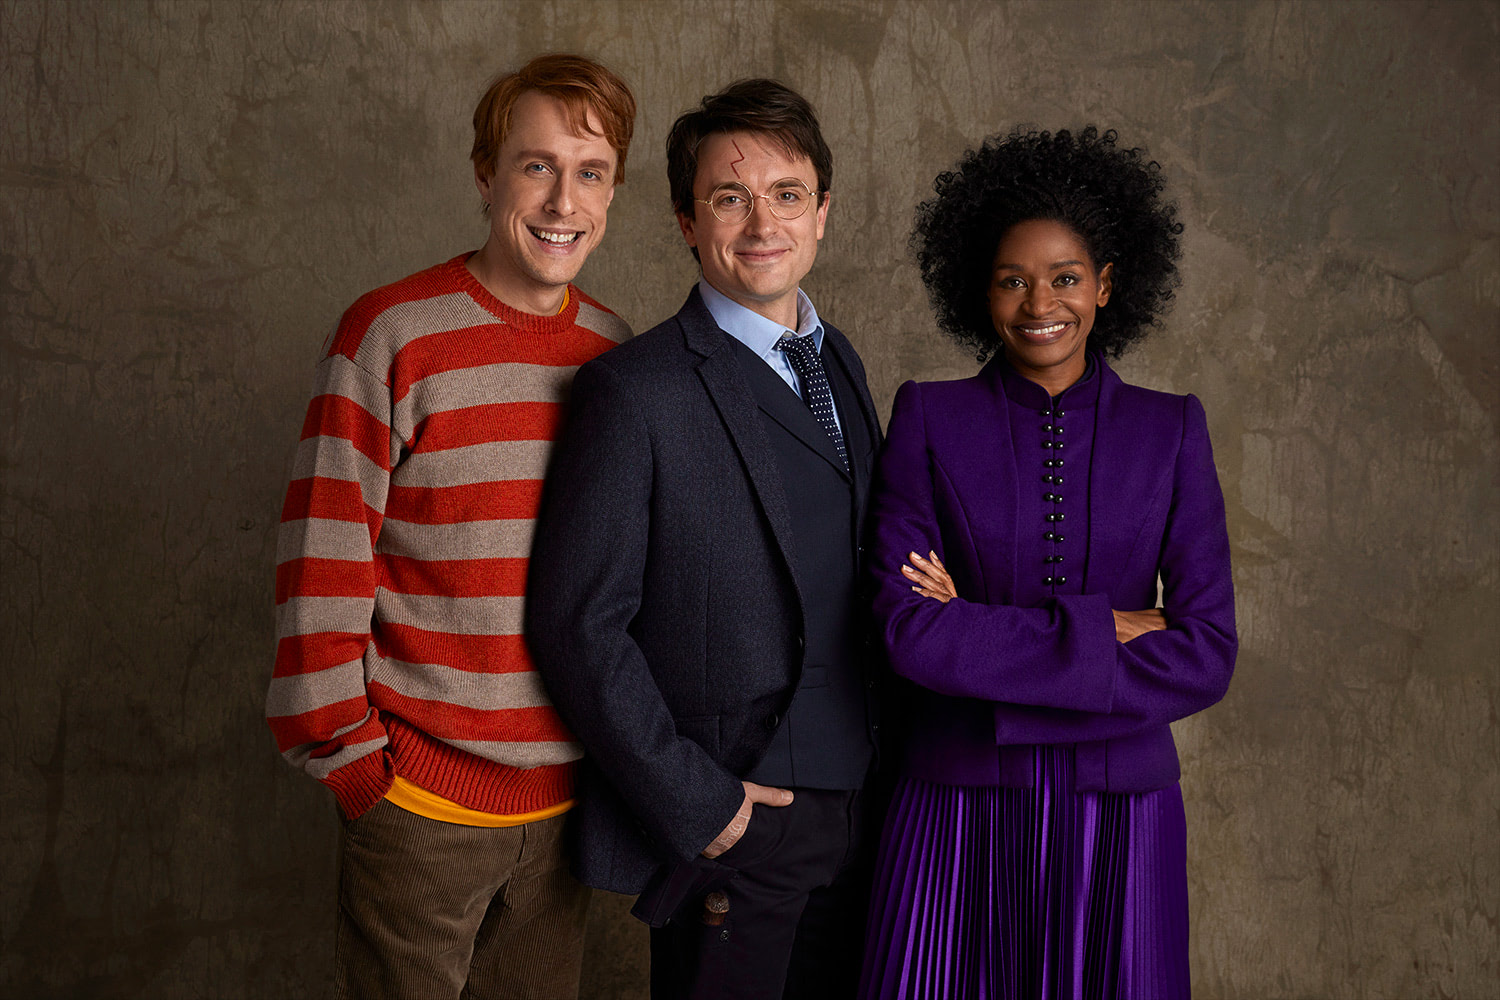 Ron, Harry and Hermione ('Cursed Child' Broadway)